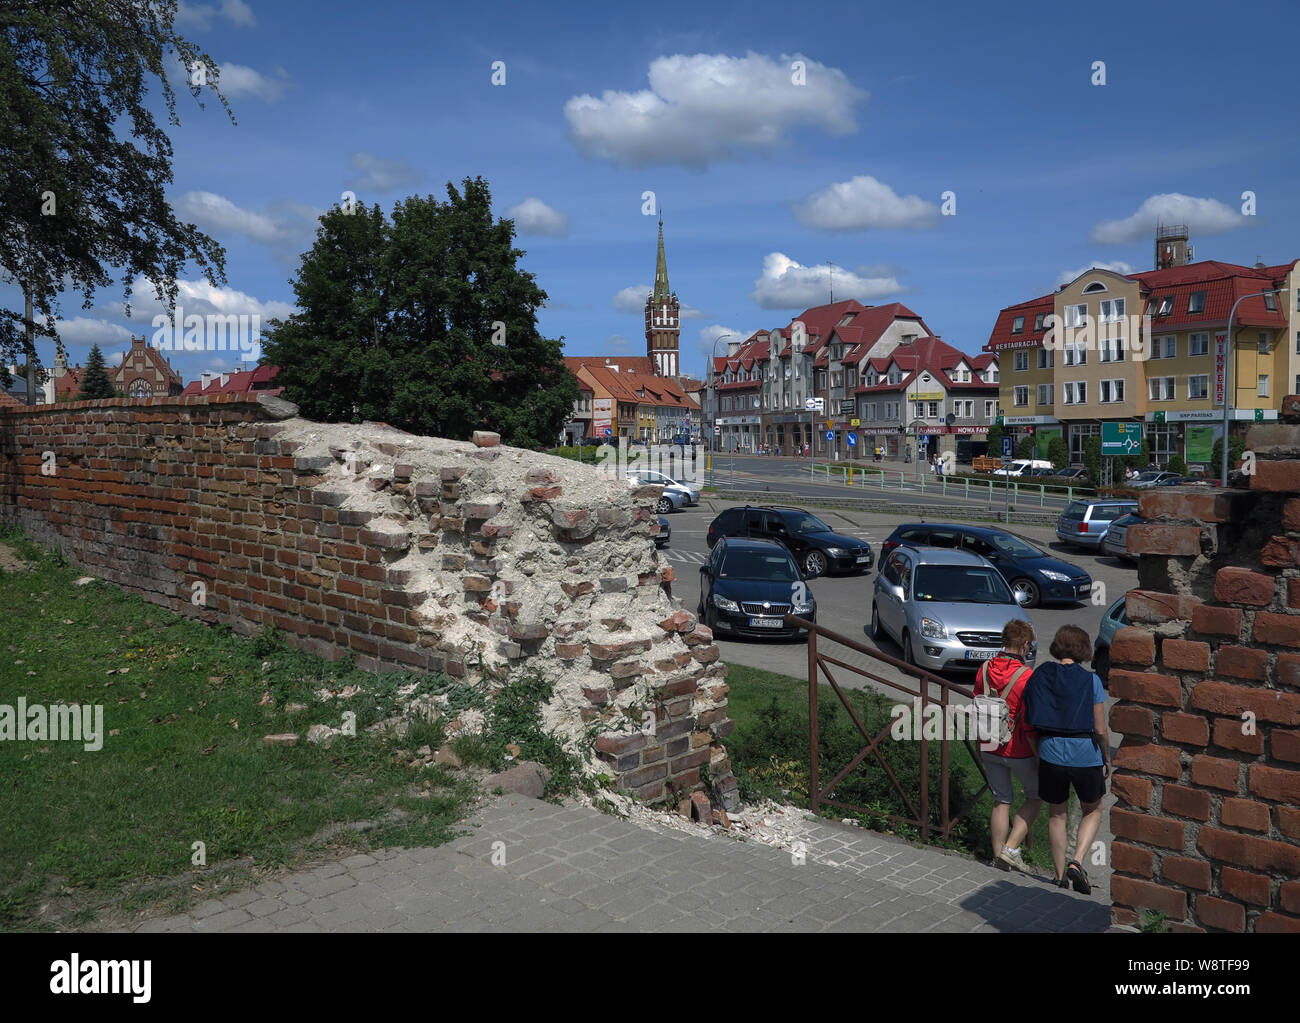 View on remnants of the old city wall and citizen houses in the town Ketrzyn (Rastenburg) in the polish Masuria (former Ostpreussen) - in the background the neo-gothic church St. Katharina, taken on 15.07.2019 | usage worldwide Stock Photo